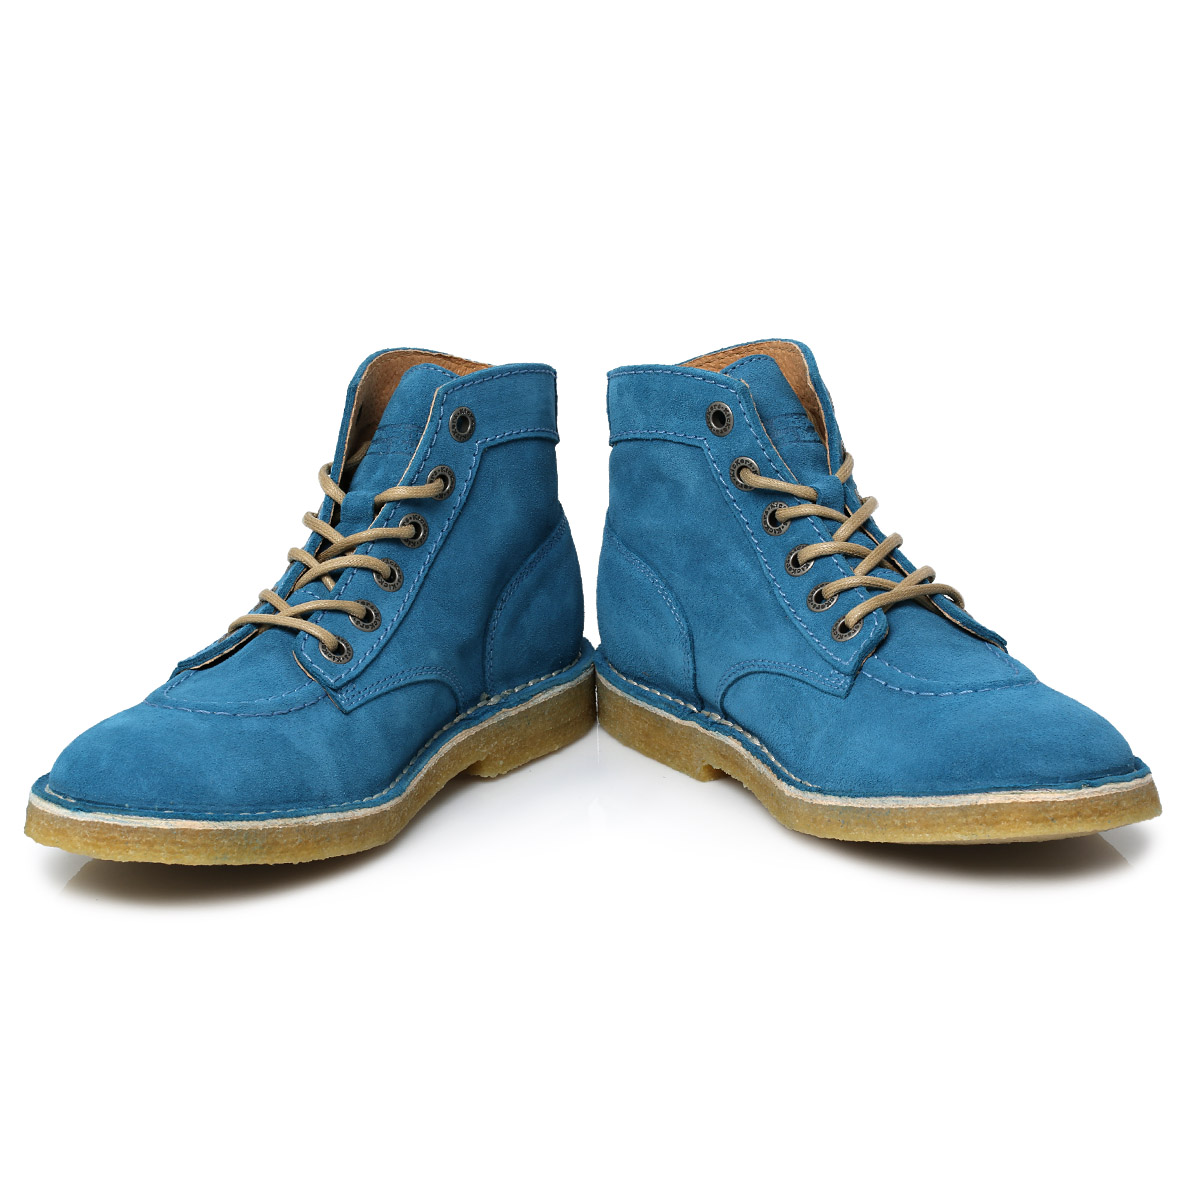 Kickers Blue Kick Legend Suede Mens Boots Size 7-11 | eBay